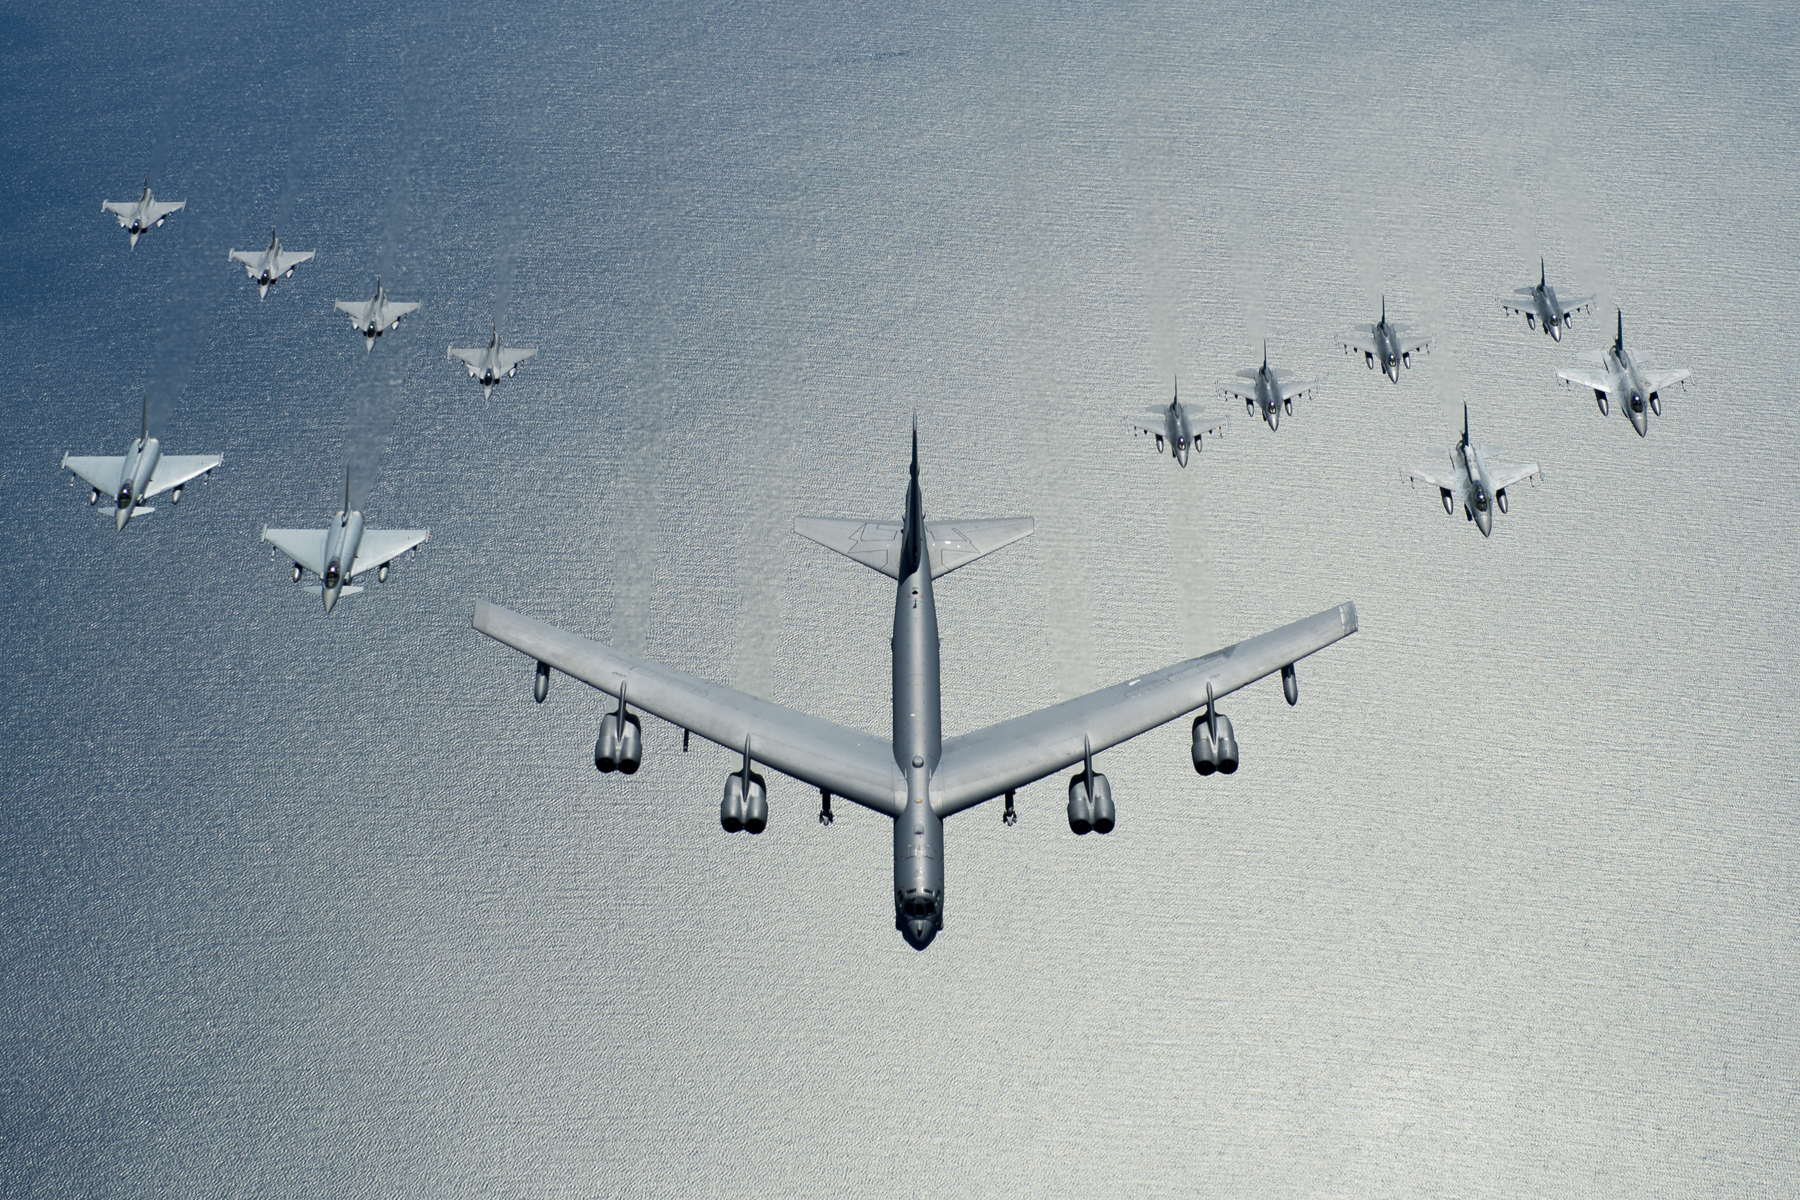 A United States Air Force ‪‎B52‬ Stratofortress leads a formation of aircraft including two Polish air force ‪‎F16‬ Fighting Falcons, four U.S. Air Force F16 Fighting Falcons, two German ‪‎Eurofighter‬ ‎Typhoons‬ and four ‪‎Swedish‬ ‎Gripens‬ over the Baltic Sea, June 9, 2016. US Air Force photo.